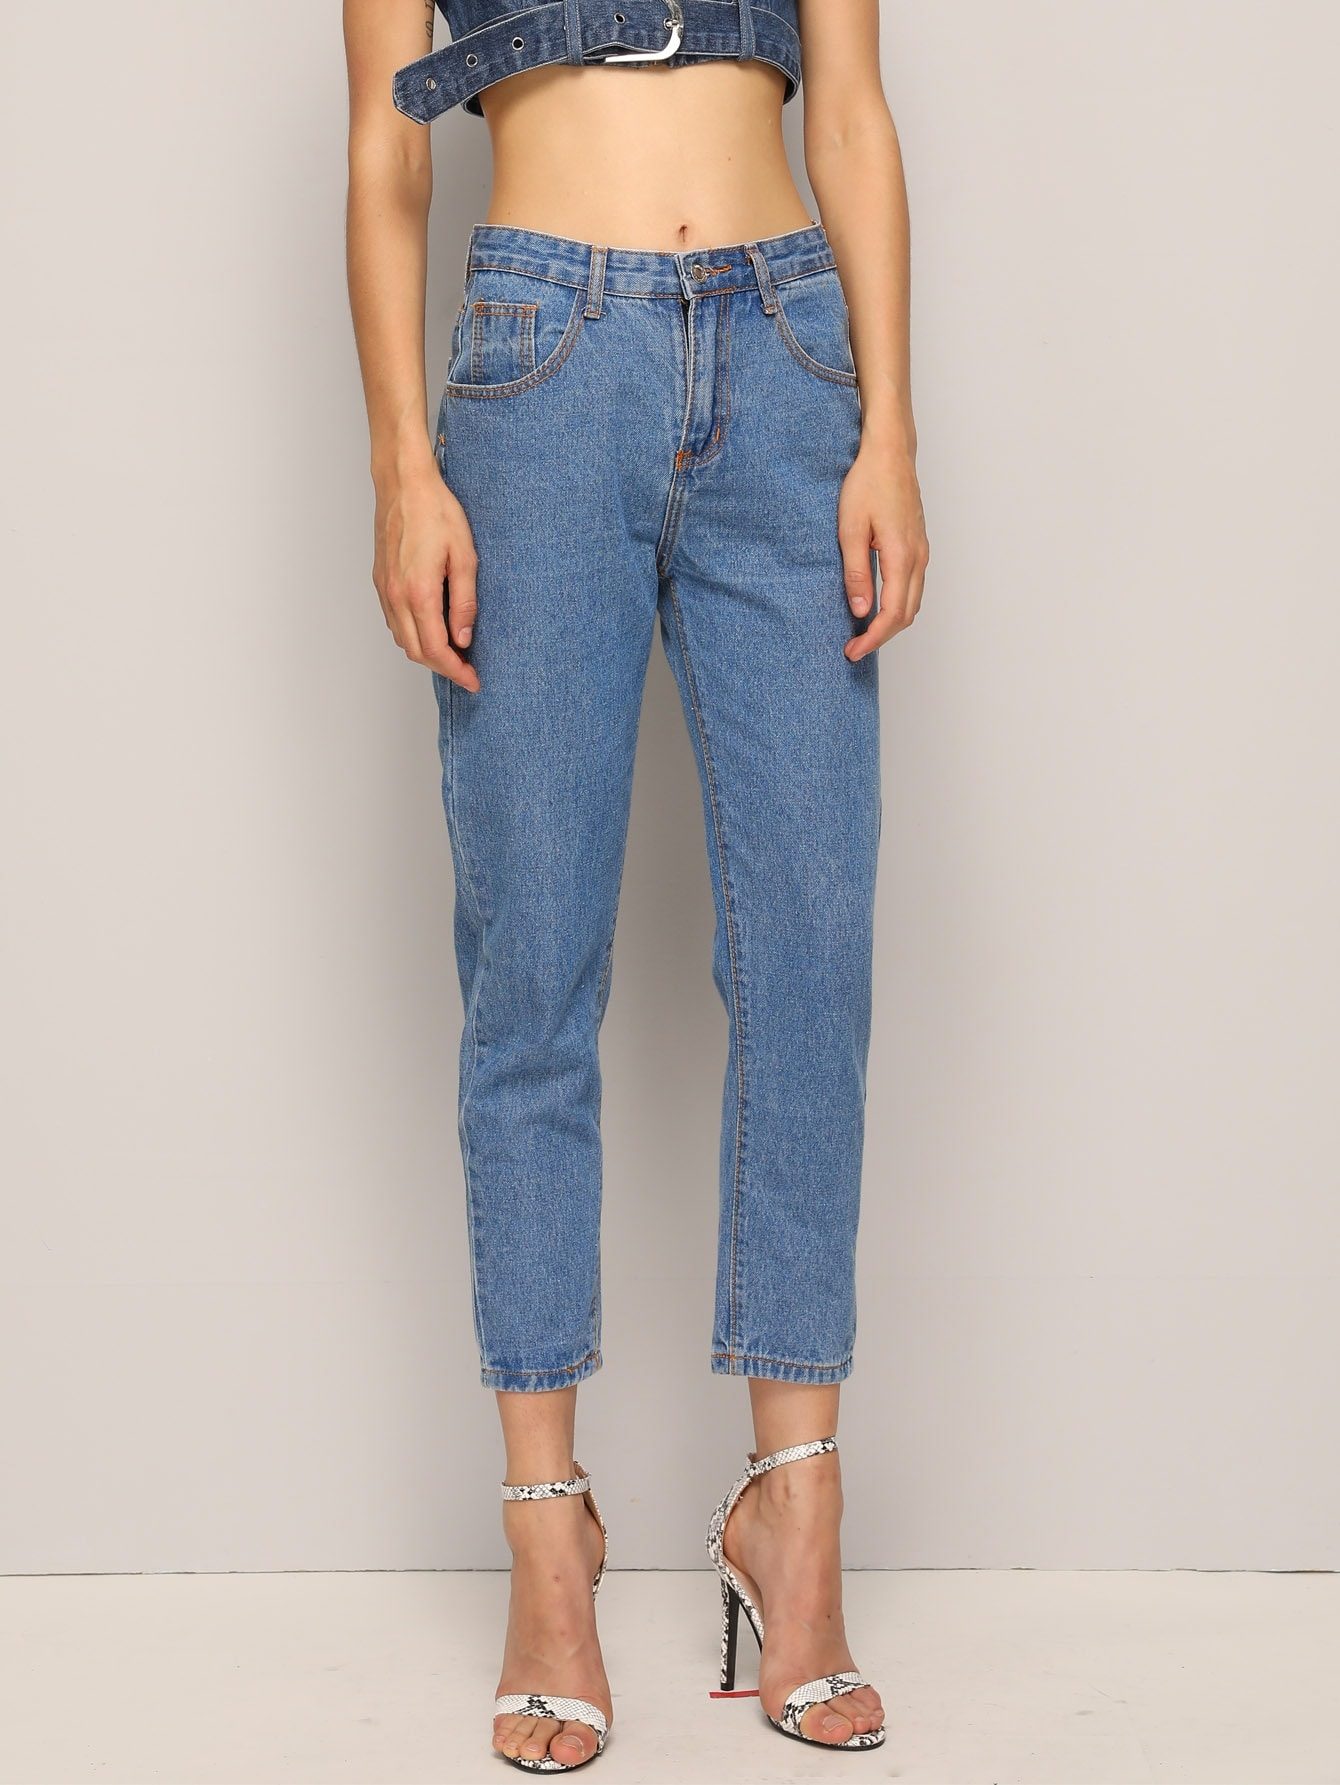 Blue Wash Cropped Jeans